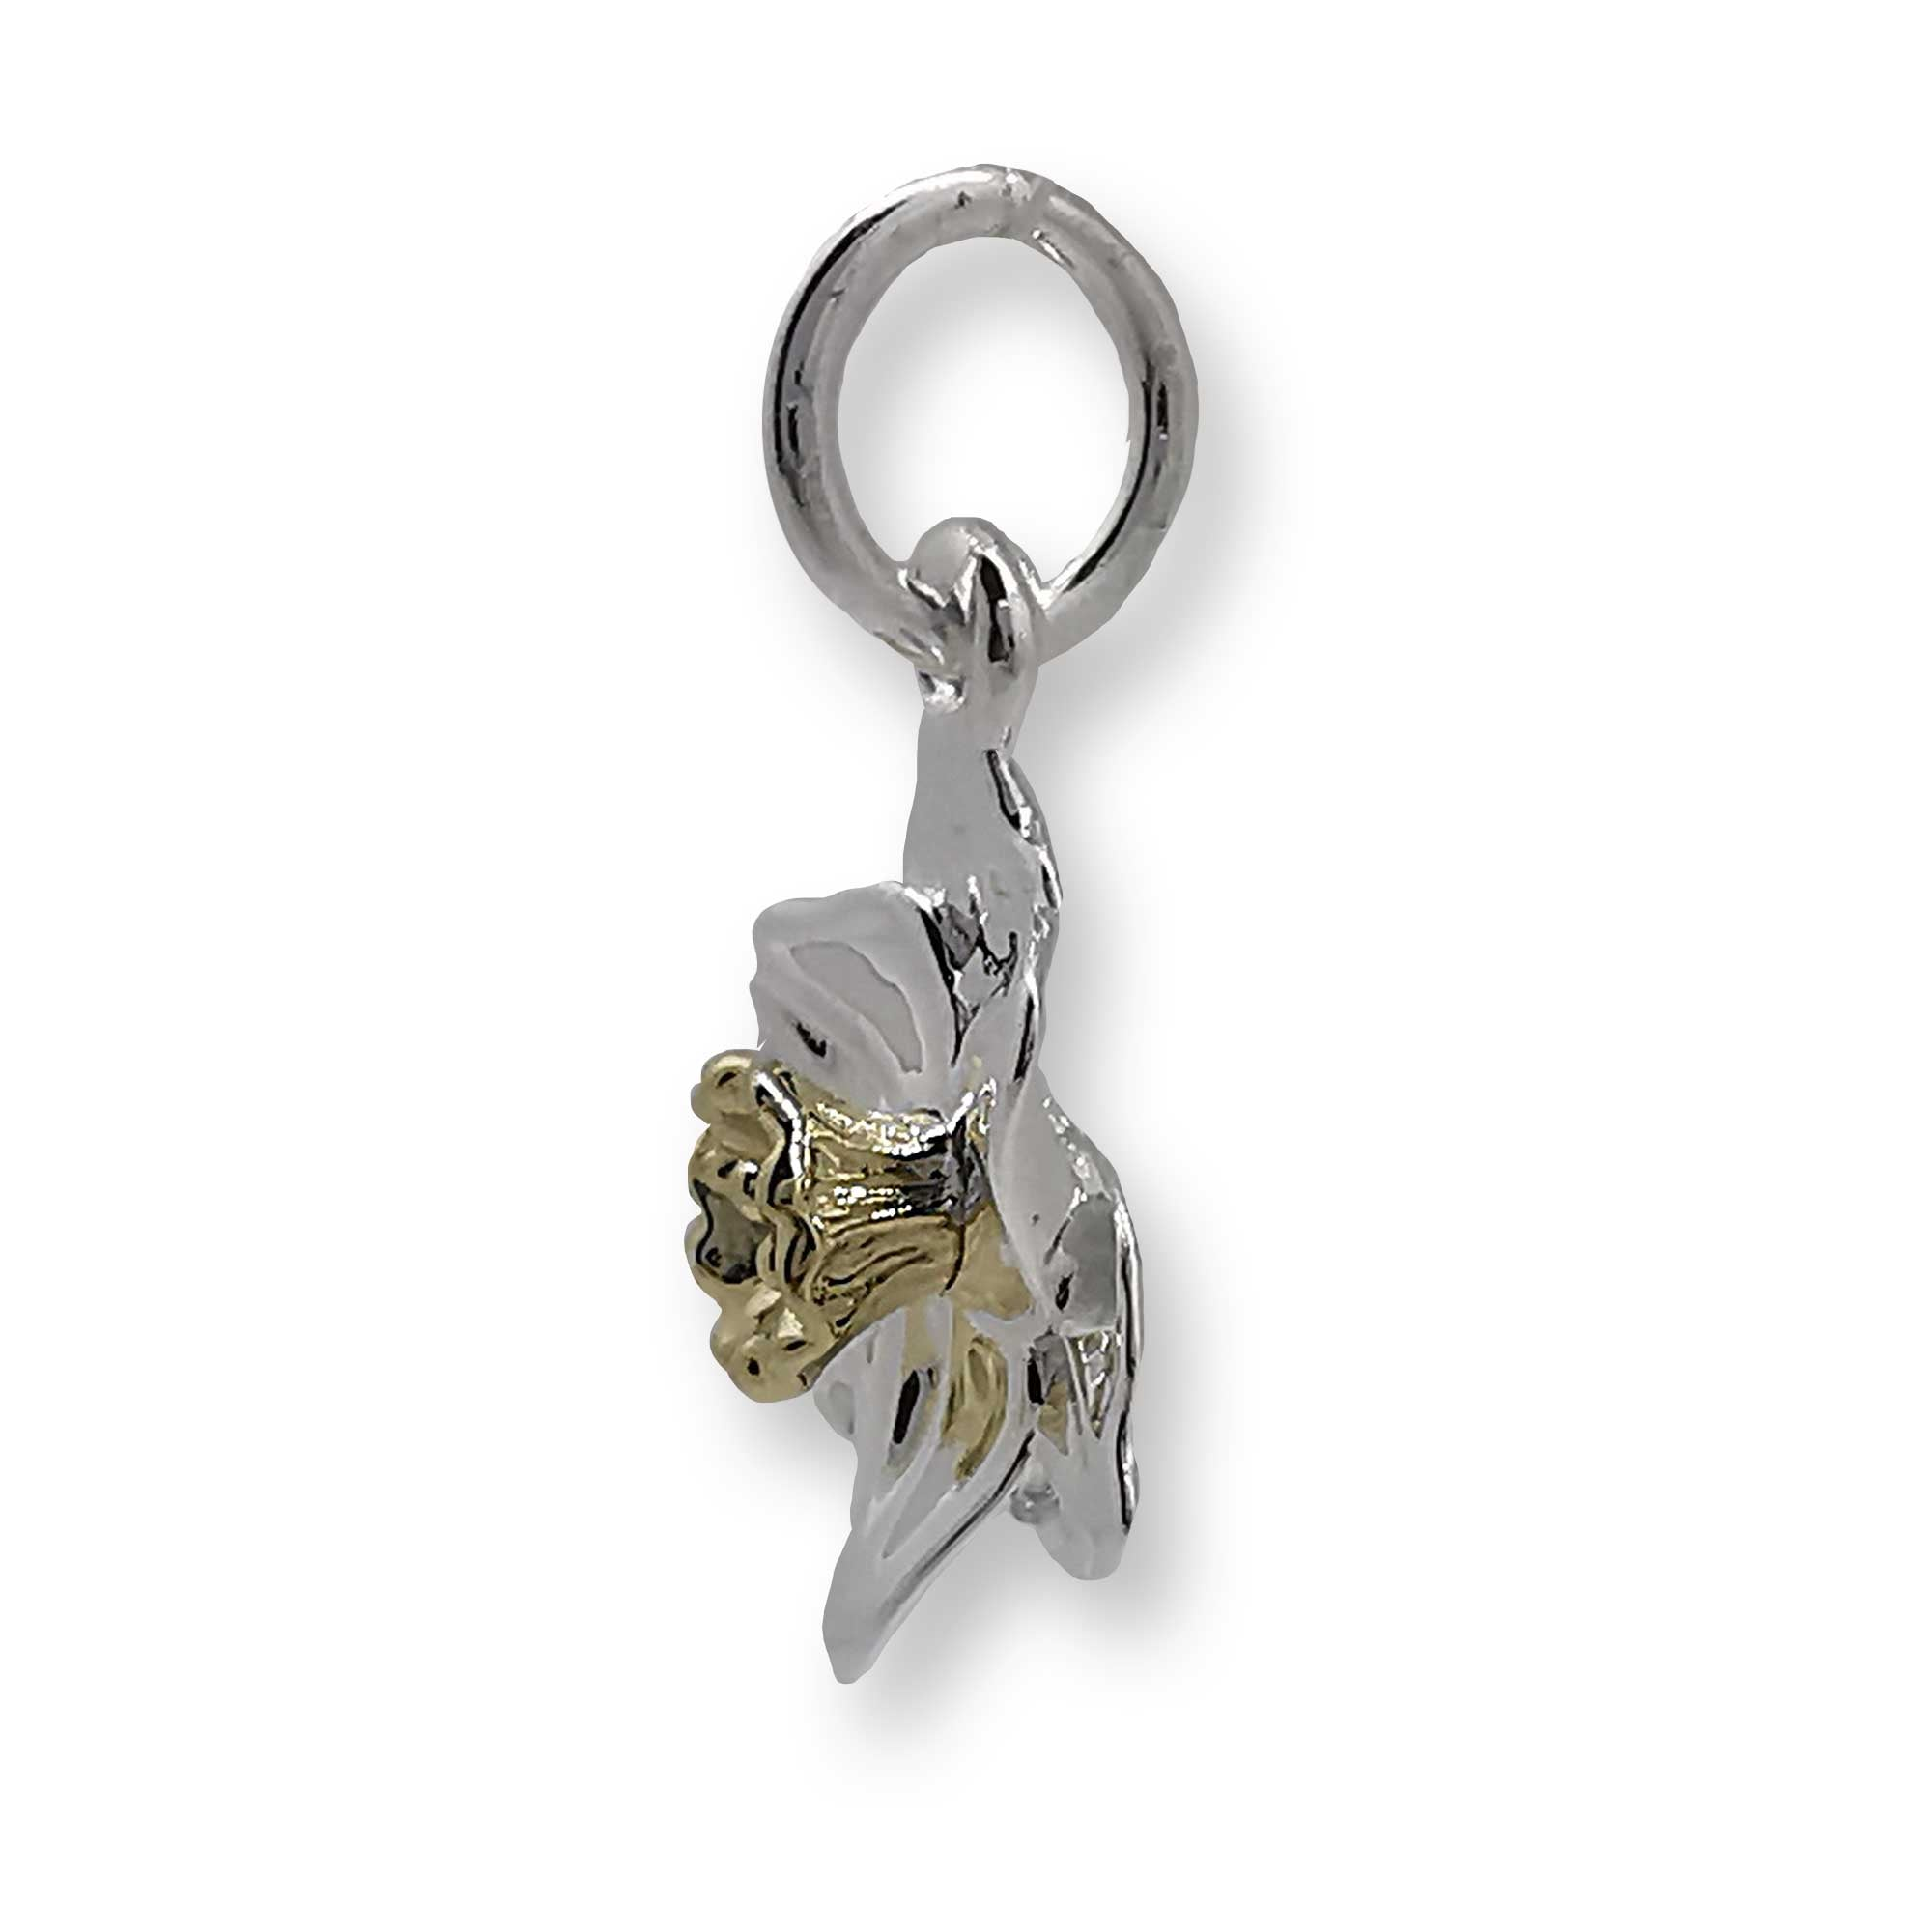 silver and gold daffodil flower charm solid gold middle scarlett jewellery chelsea flower show